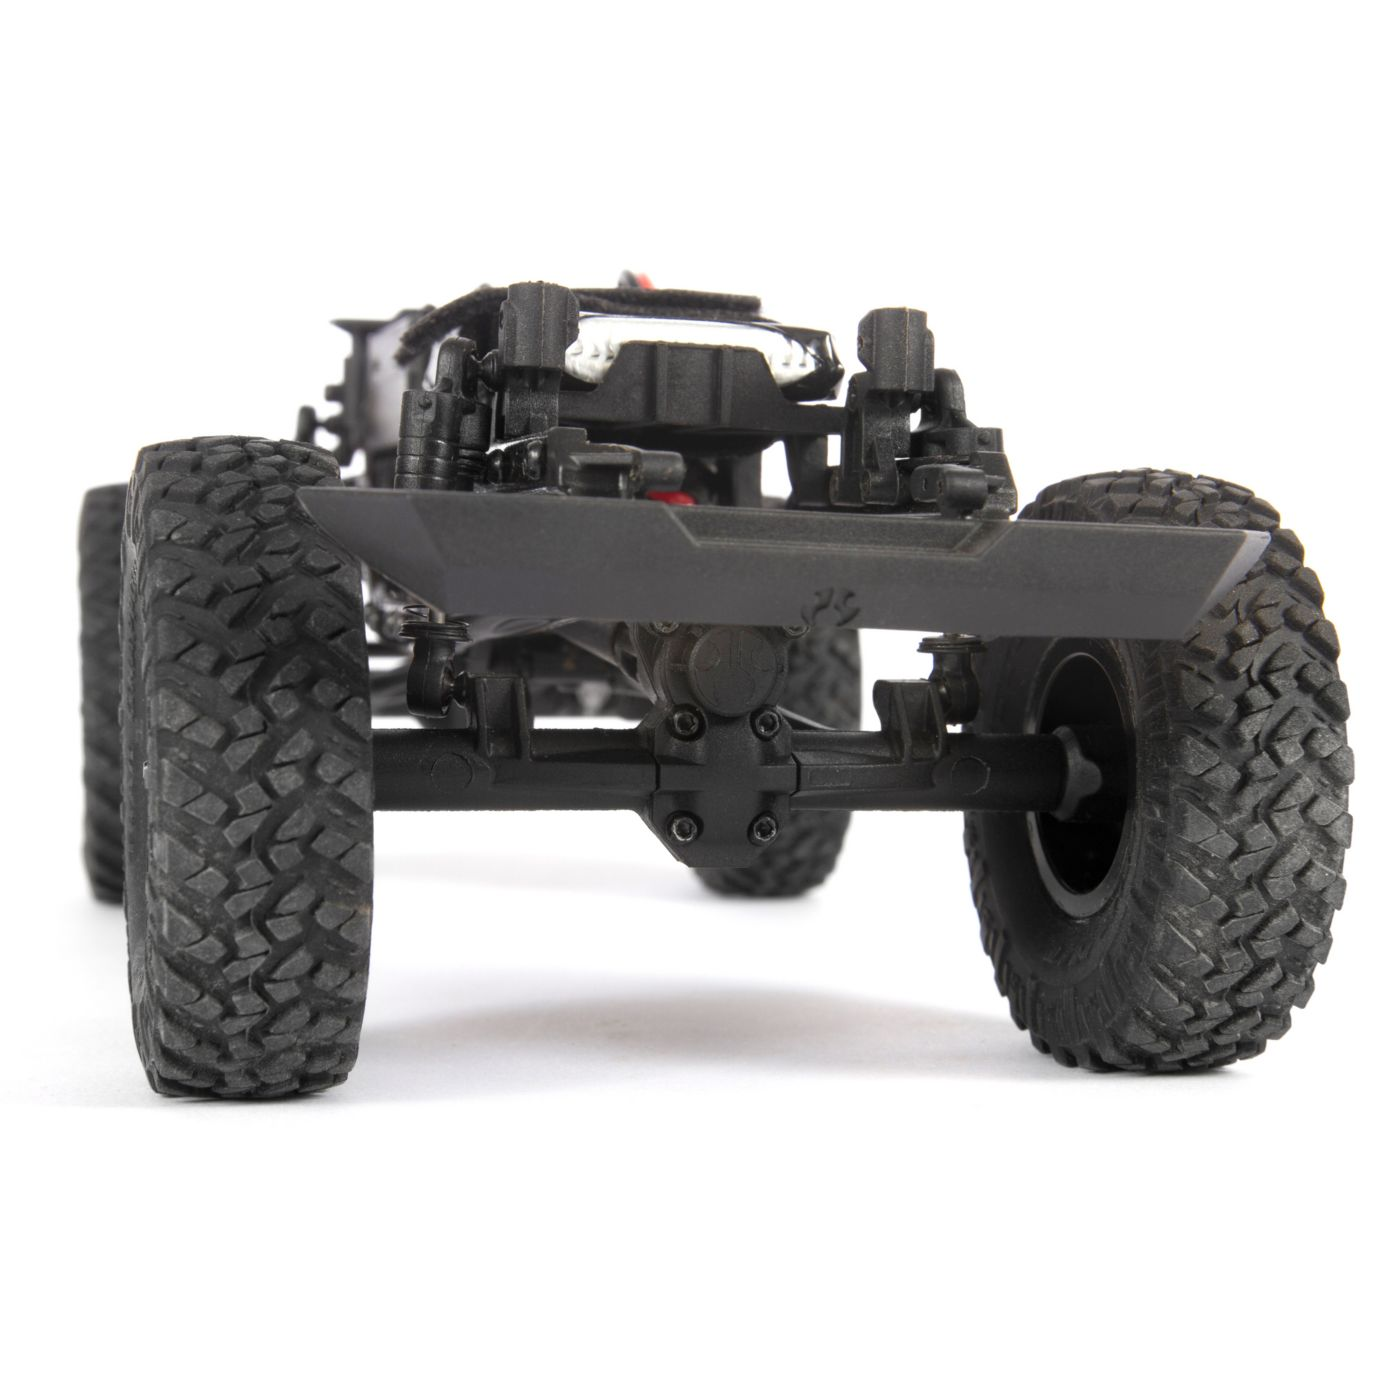 Axial Scx24 4x4 rtr scaler 1/24 03